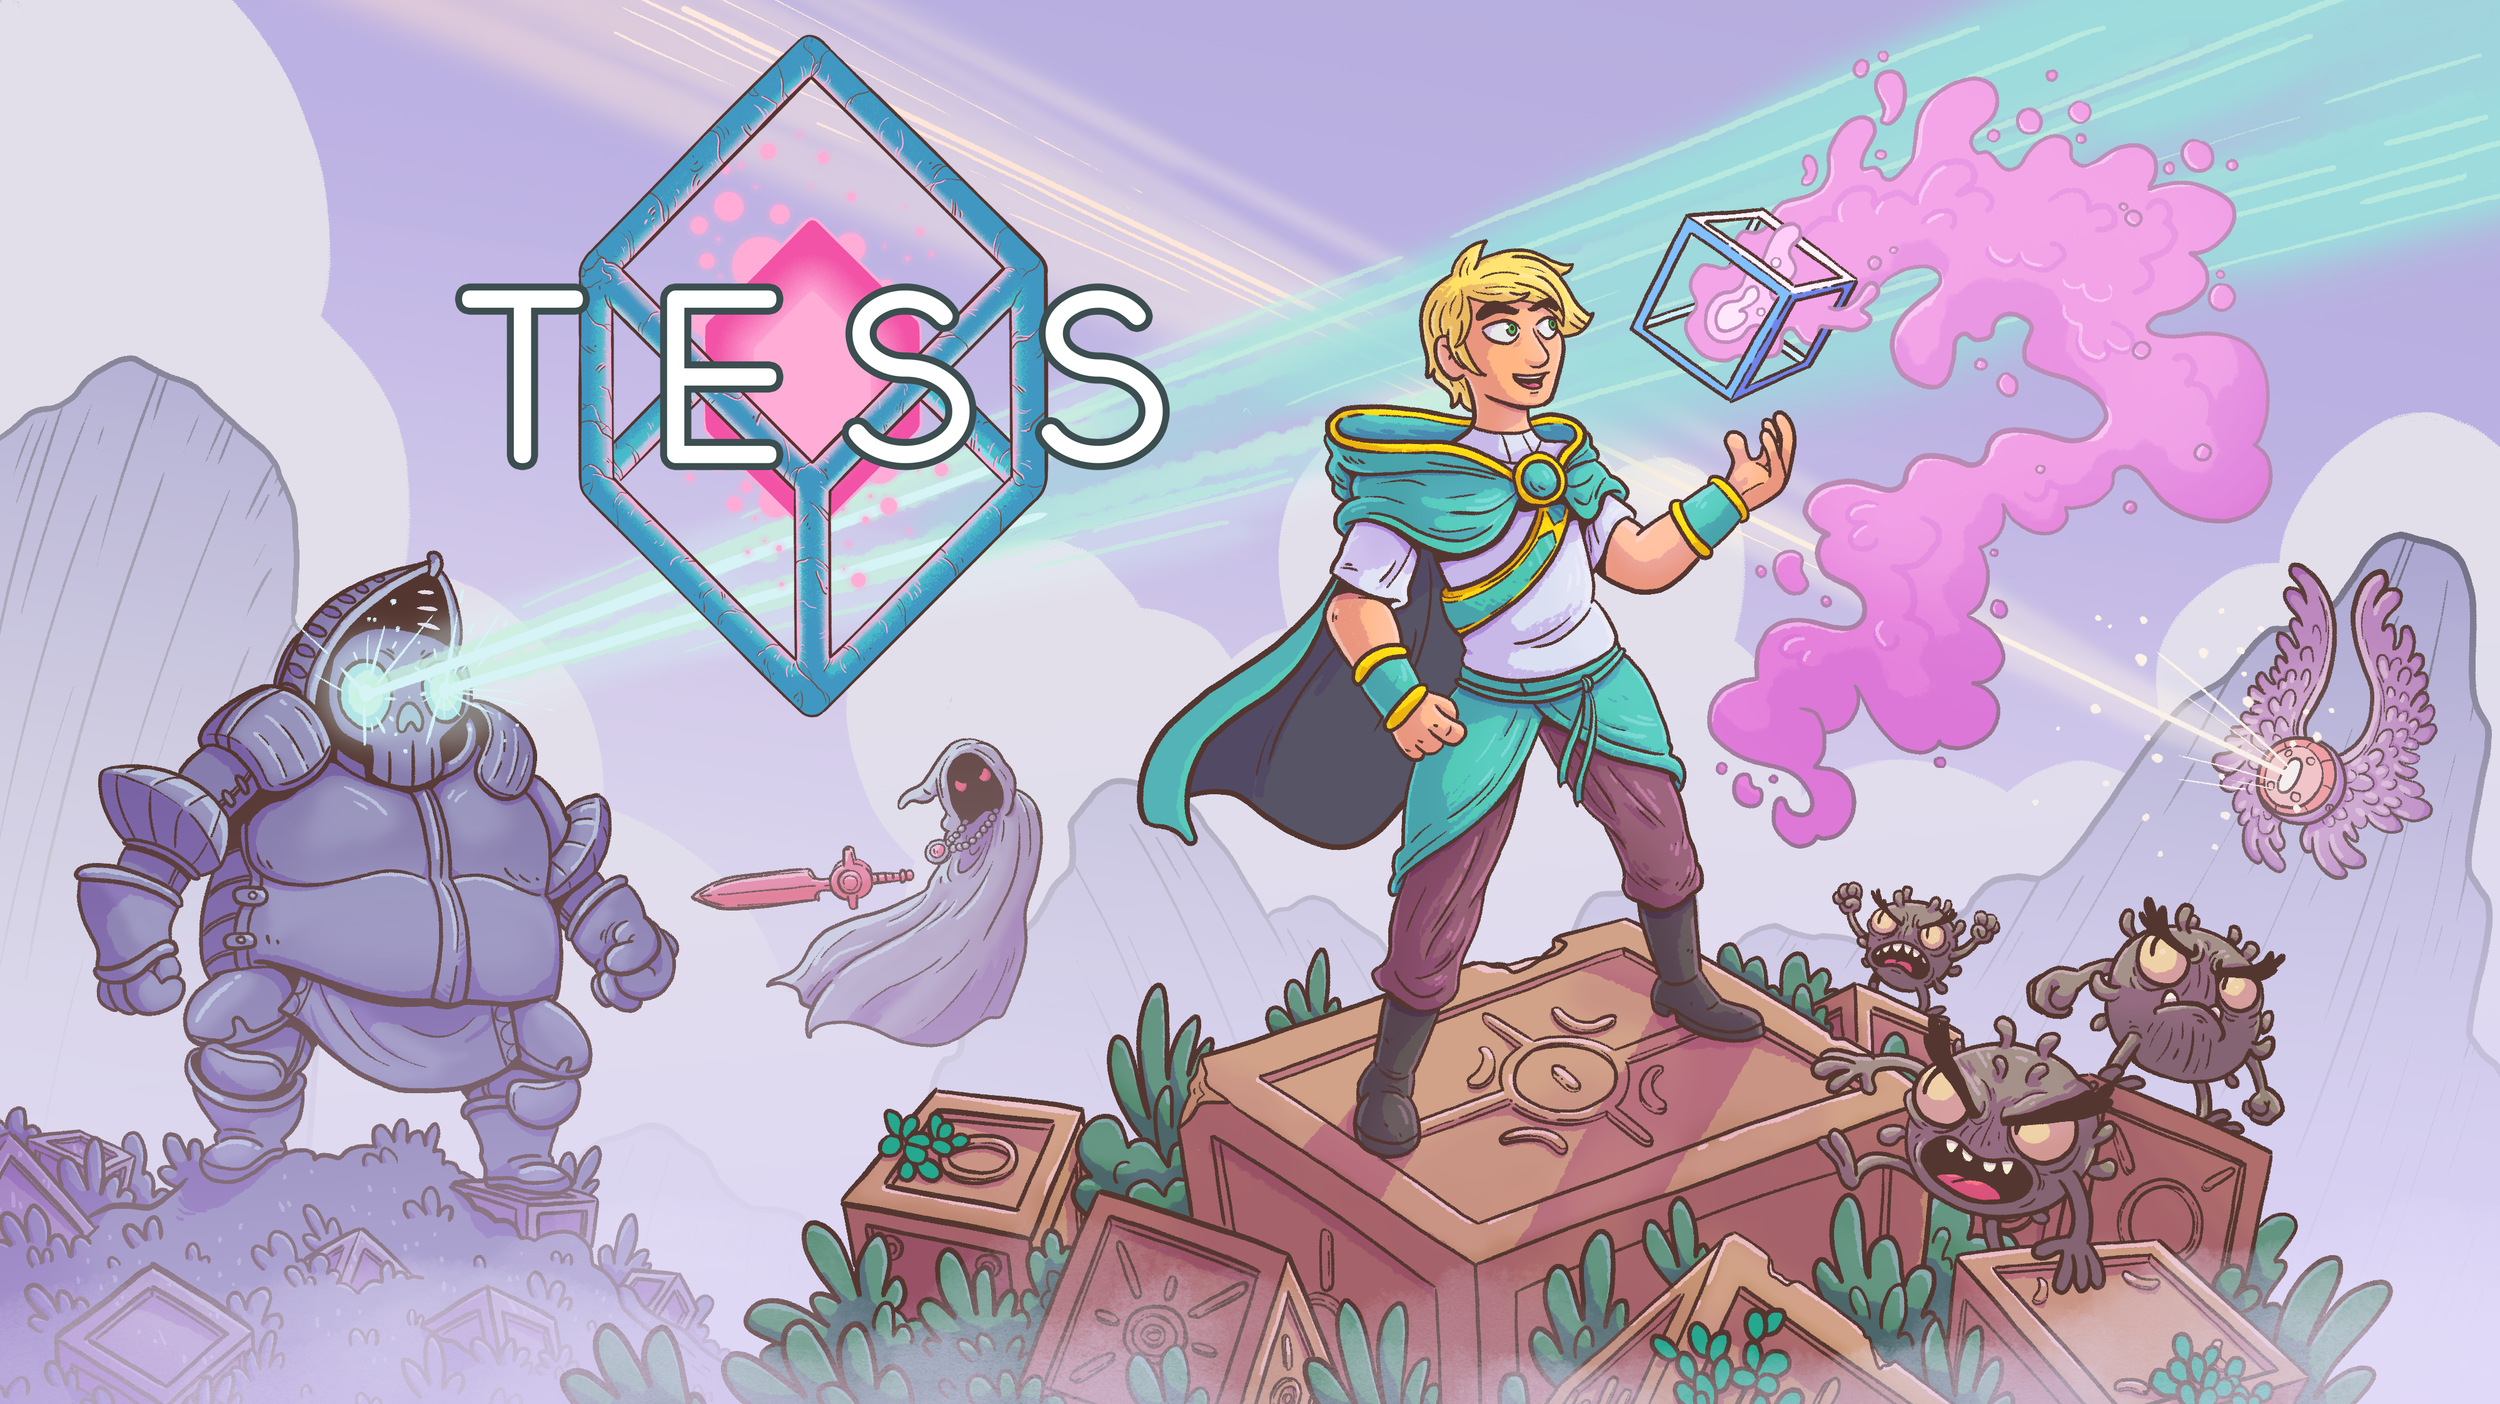 TESS video game promotional artwork